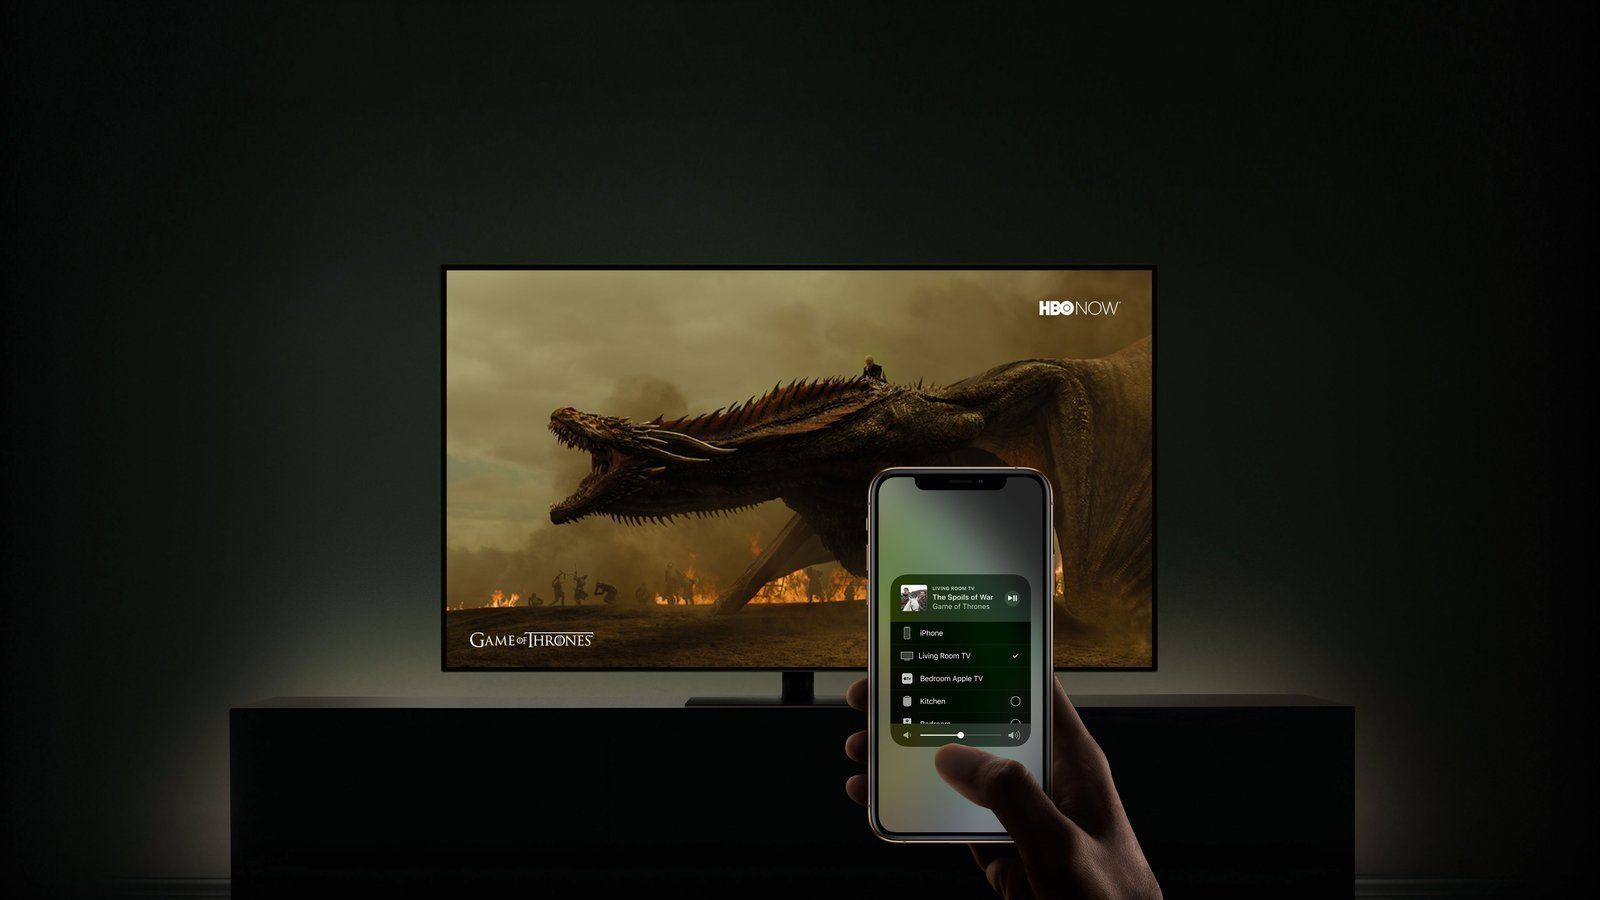 Some 2019 LG TVs will receive